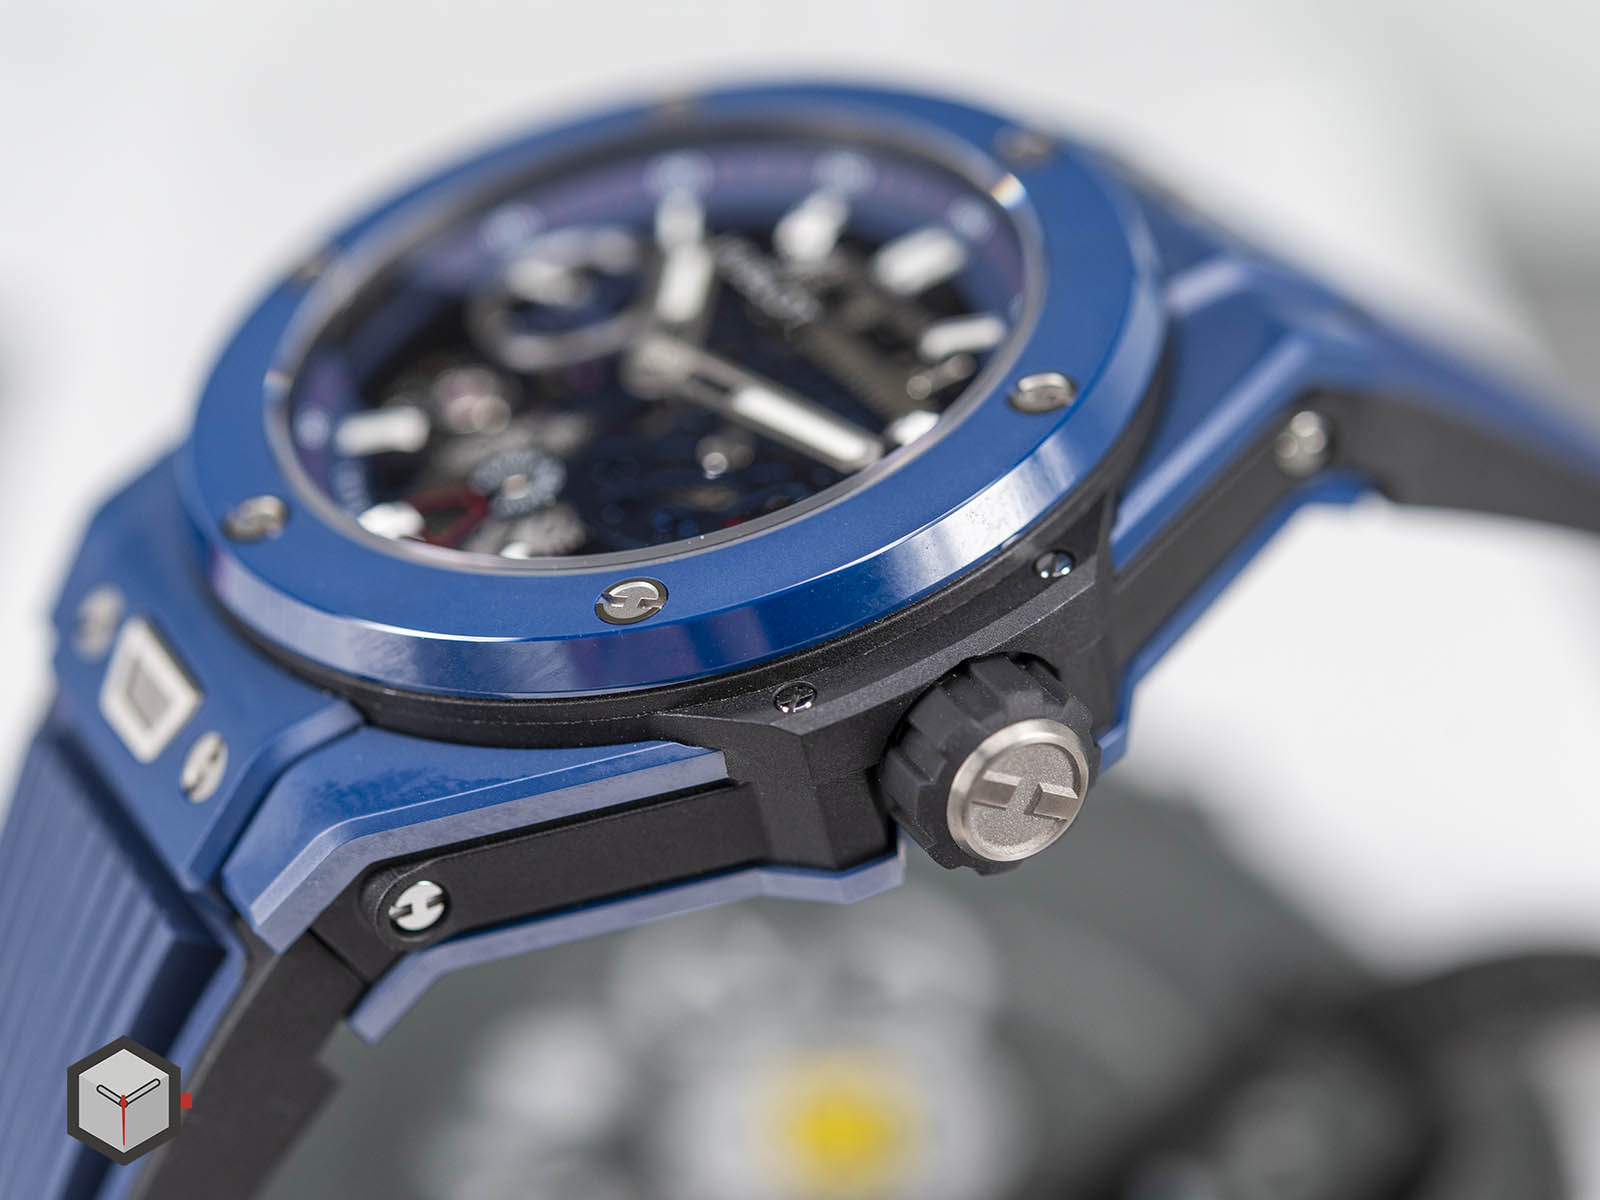 414-ex-5123-rx-hublot-big-bang-meca-10-ceramic-blue-45mm-6.jpg